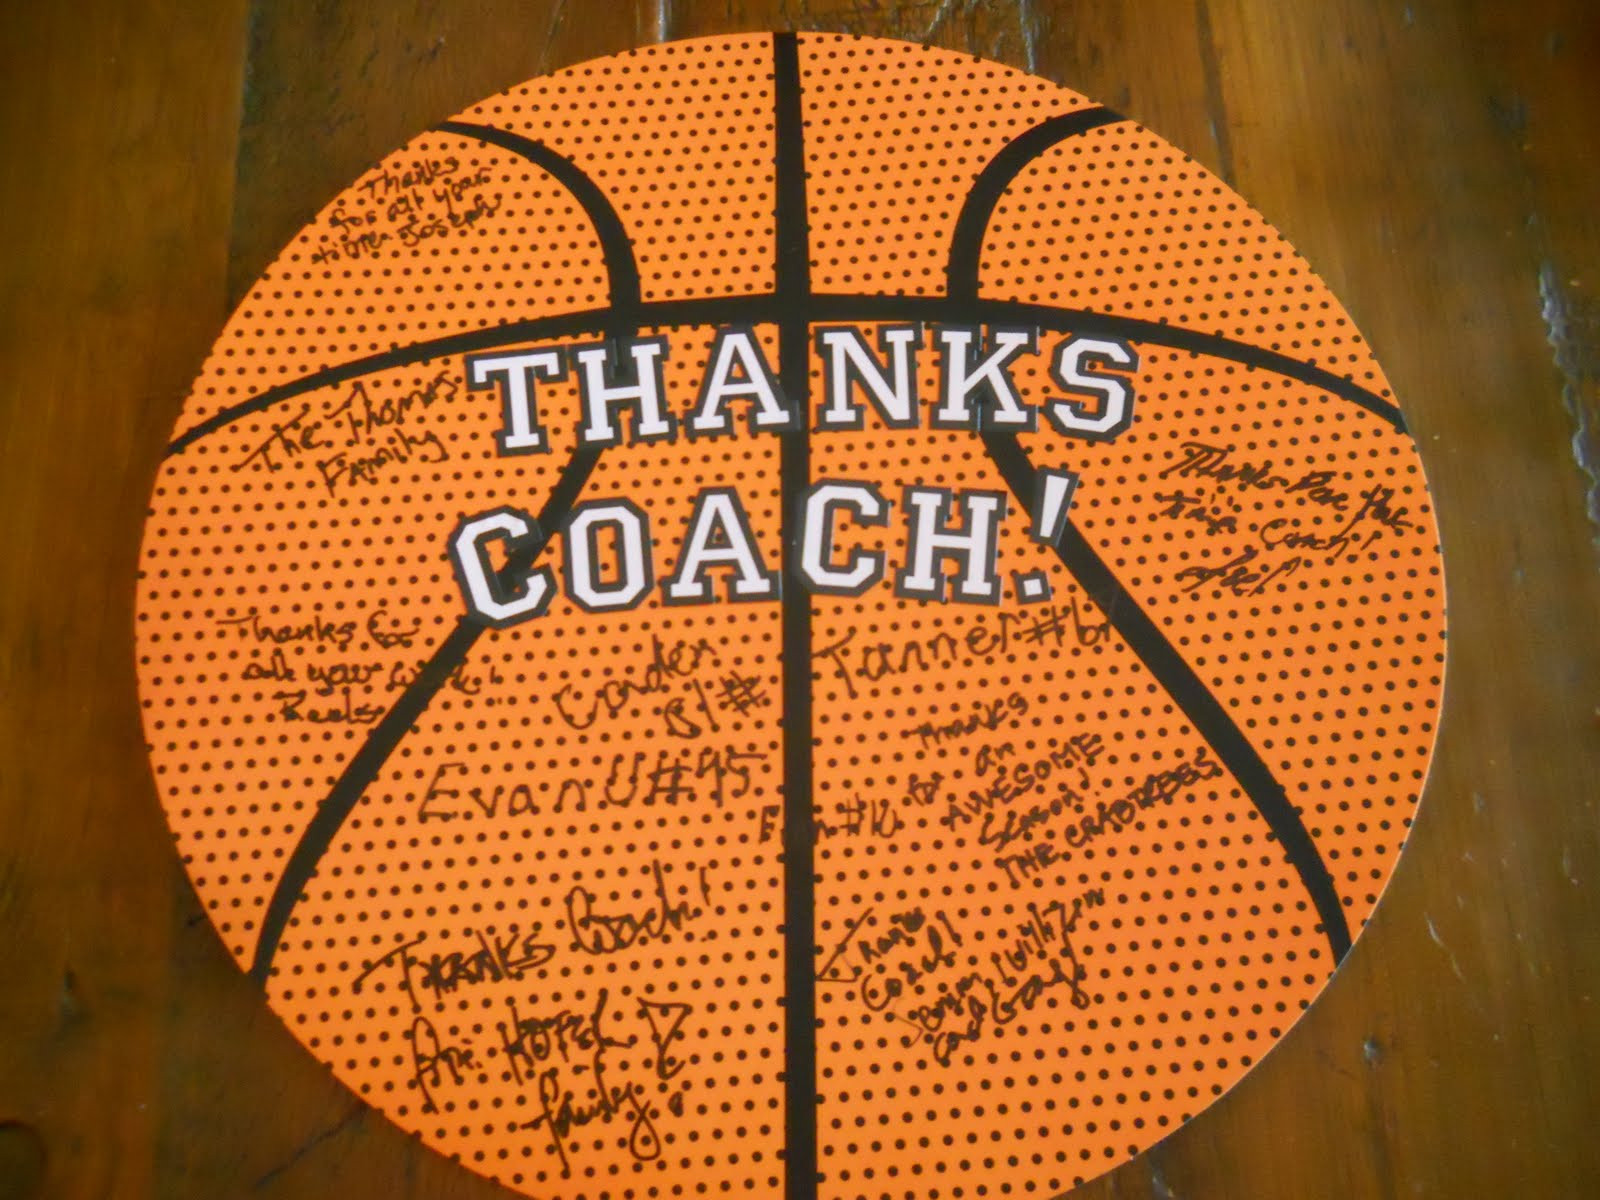 Best ideas about Basketball Gift Ideas . Save or Pin Susan Crabtree Coach & team ts Now.